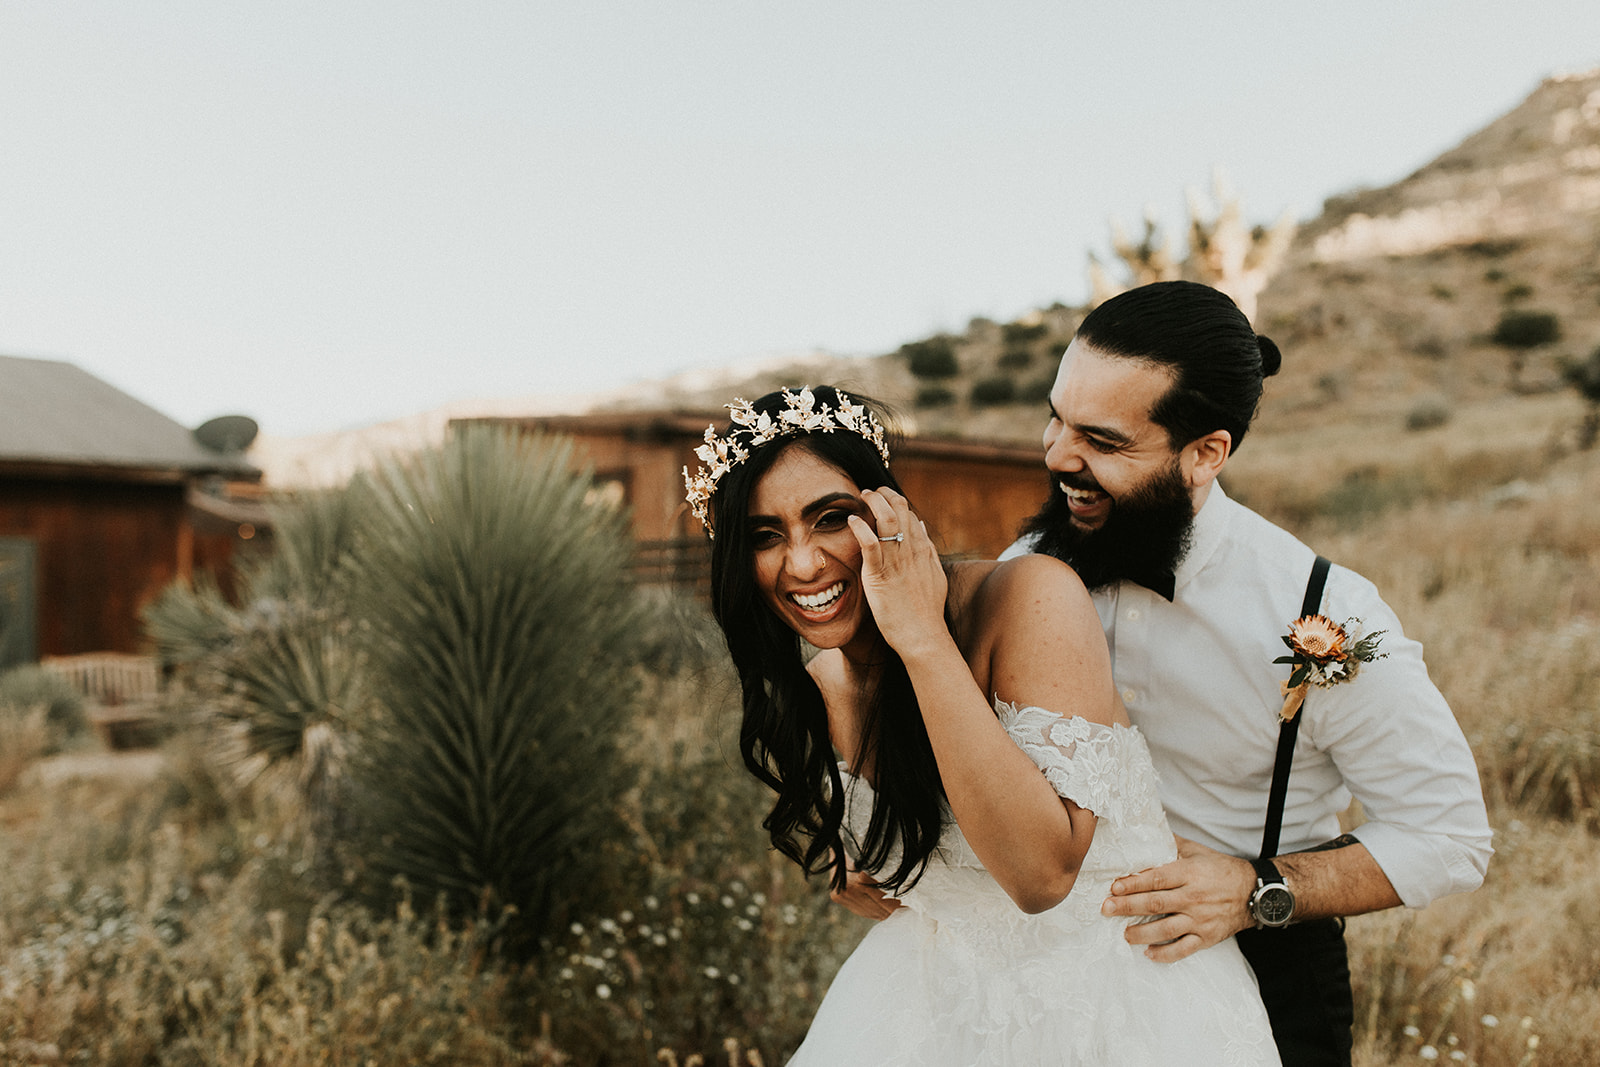 Joshua_Tree_Elopement_Hannah_Alena_Photography-137.jpg